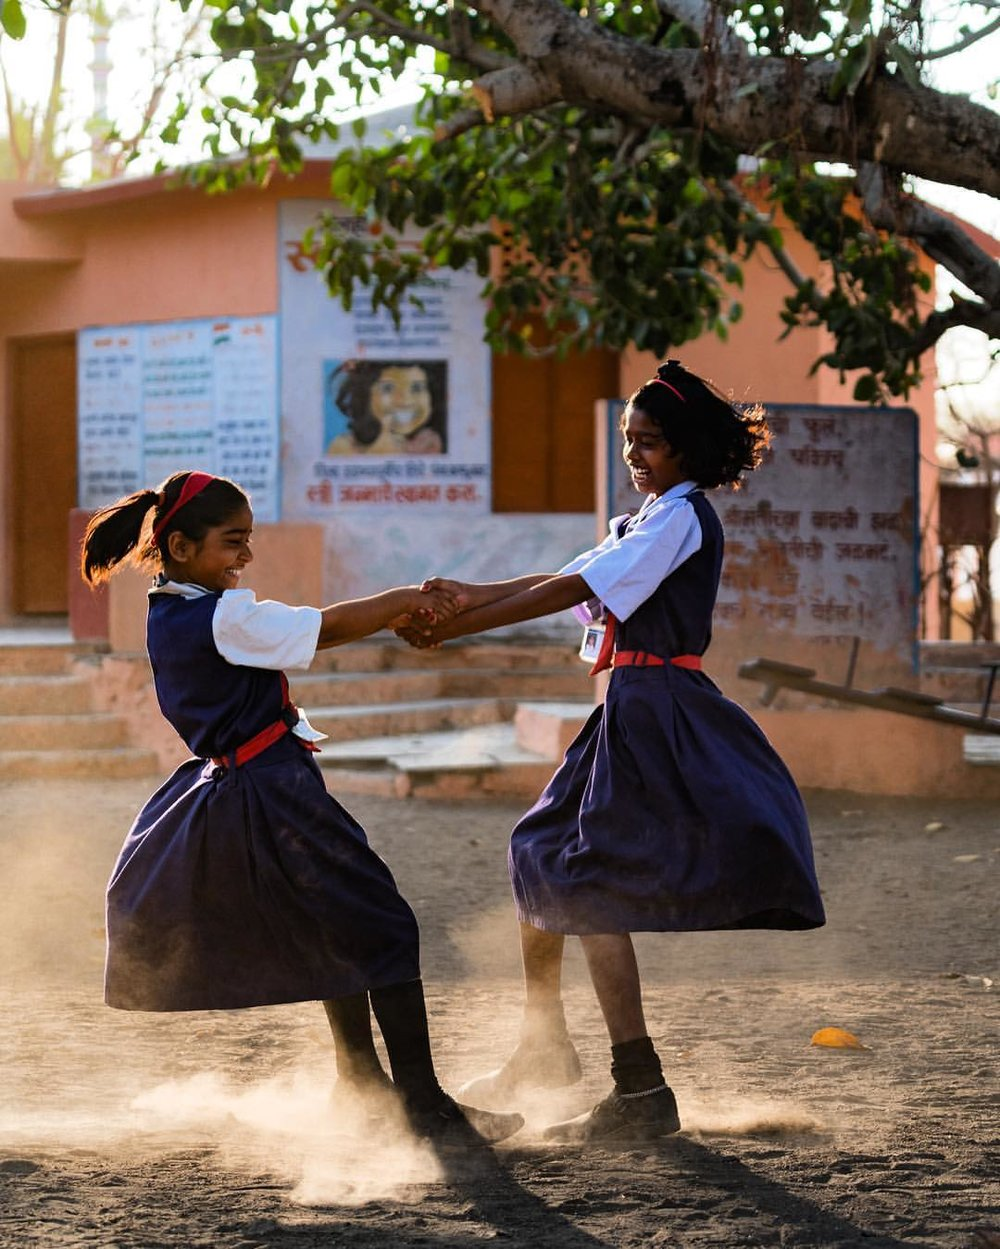 I strive to create photographs that illustrate the joys of life no matter how mundane or small. School girls playing at recess captured while on assignment in India for  Abbott